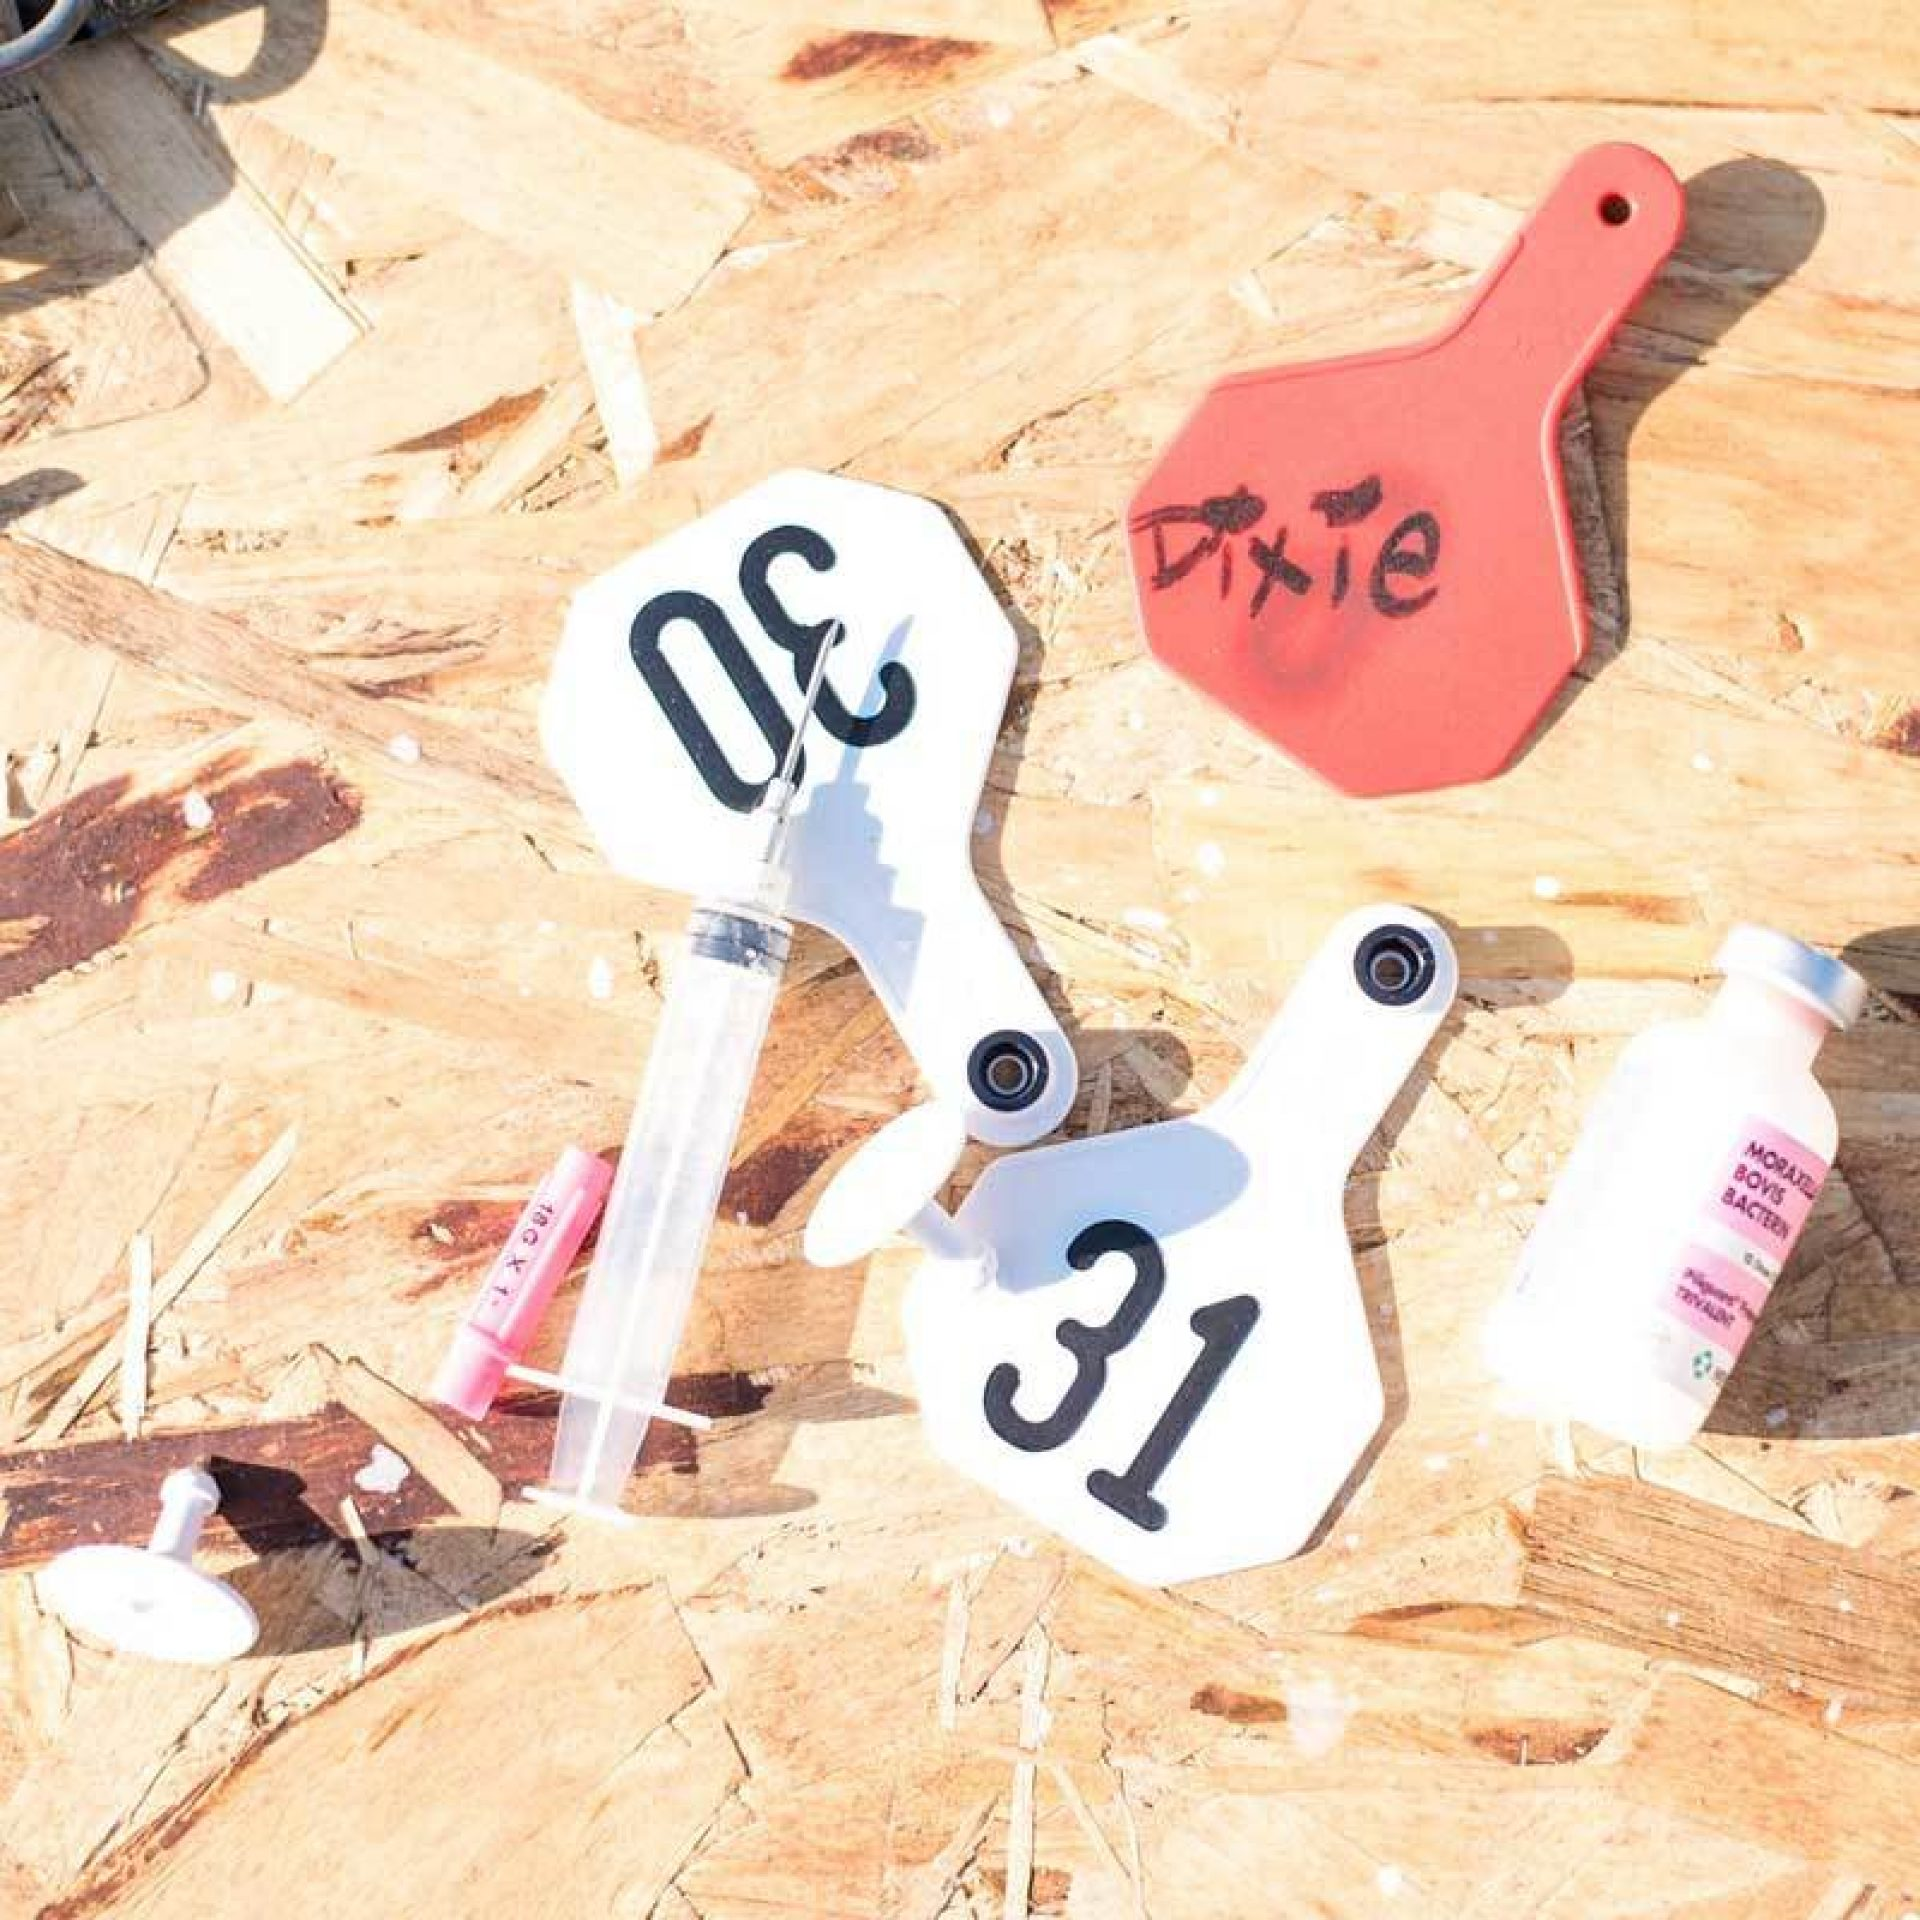 Cattle ear tags and vaccines on plywood board